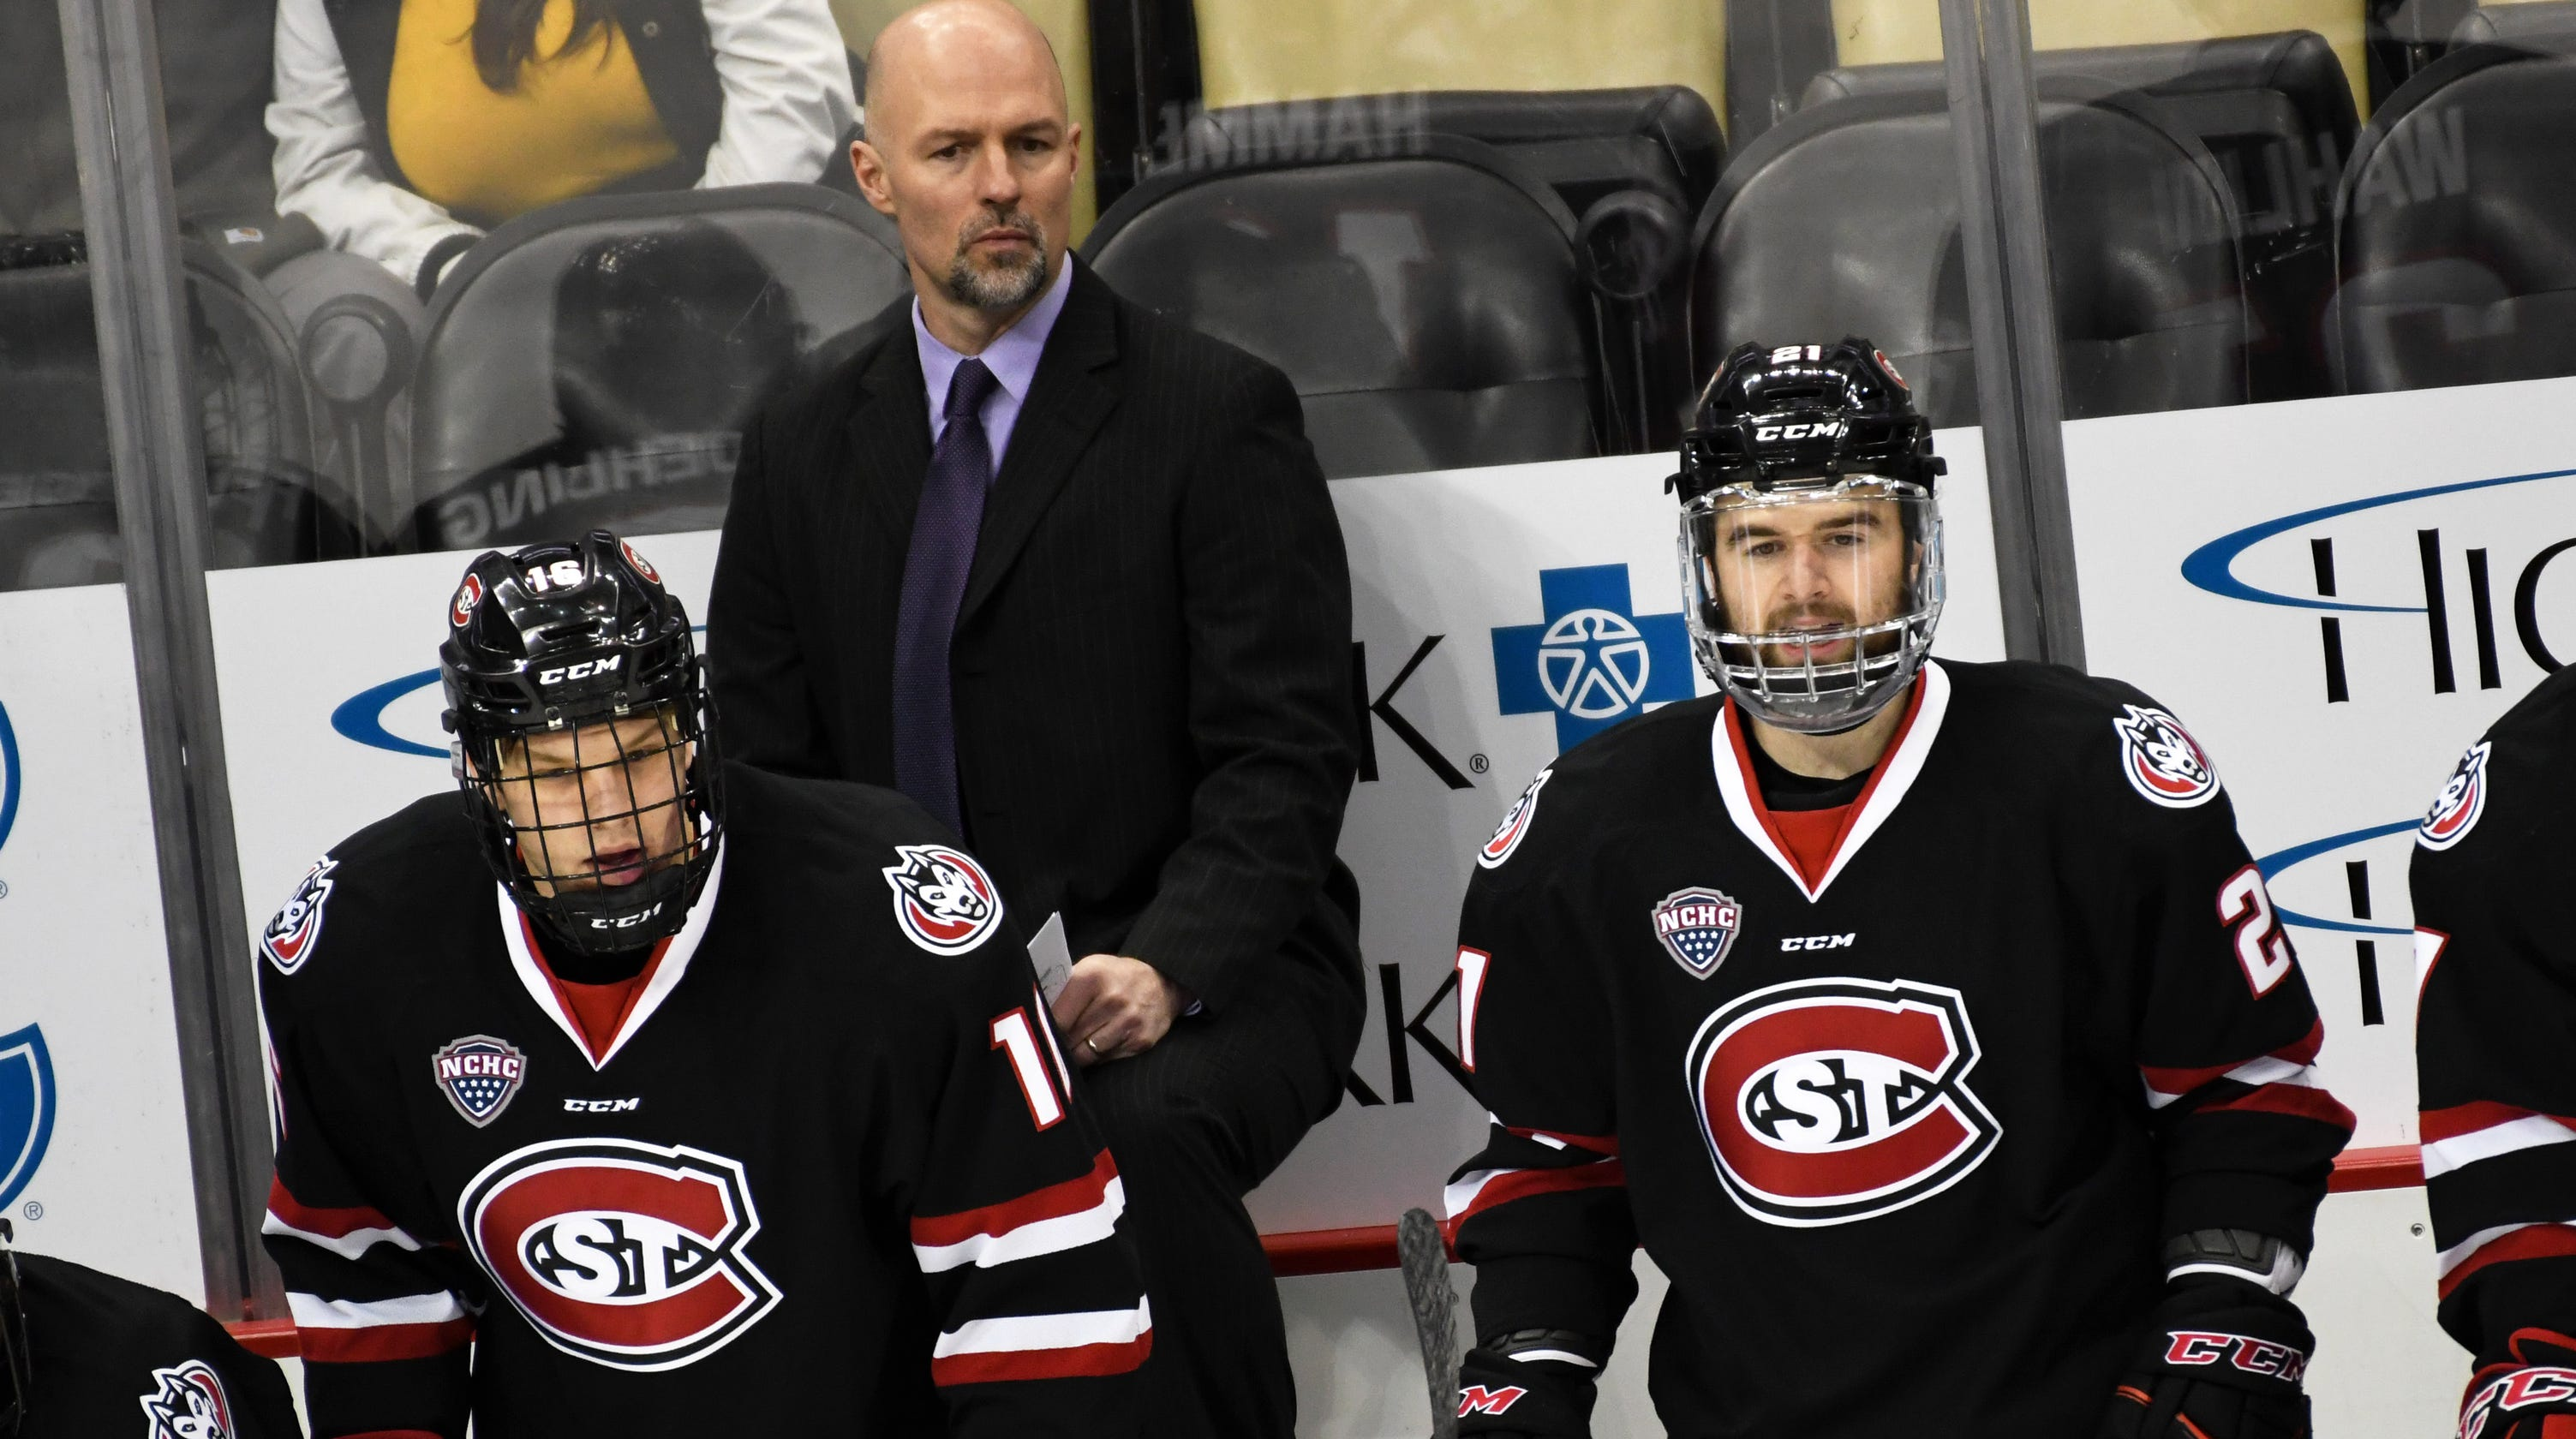 SCSU hockey coach expects an intense homecoming at UMD